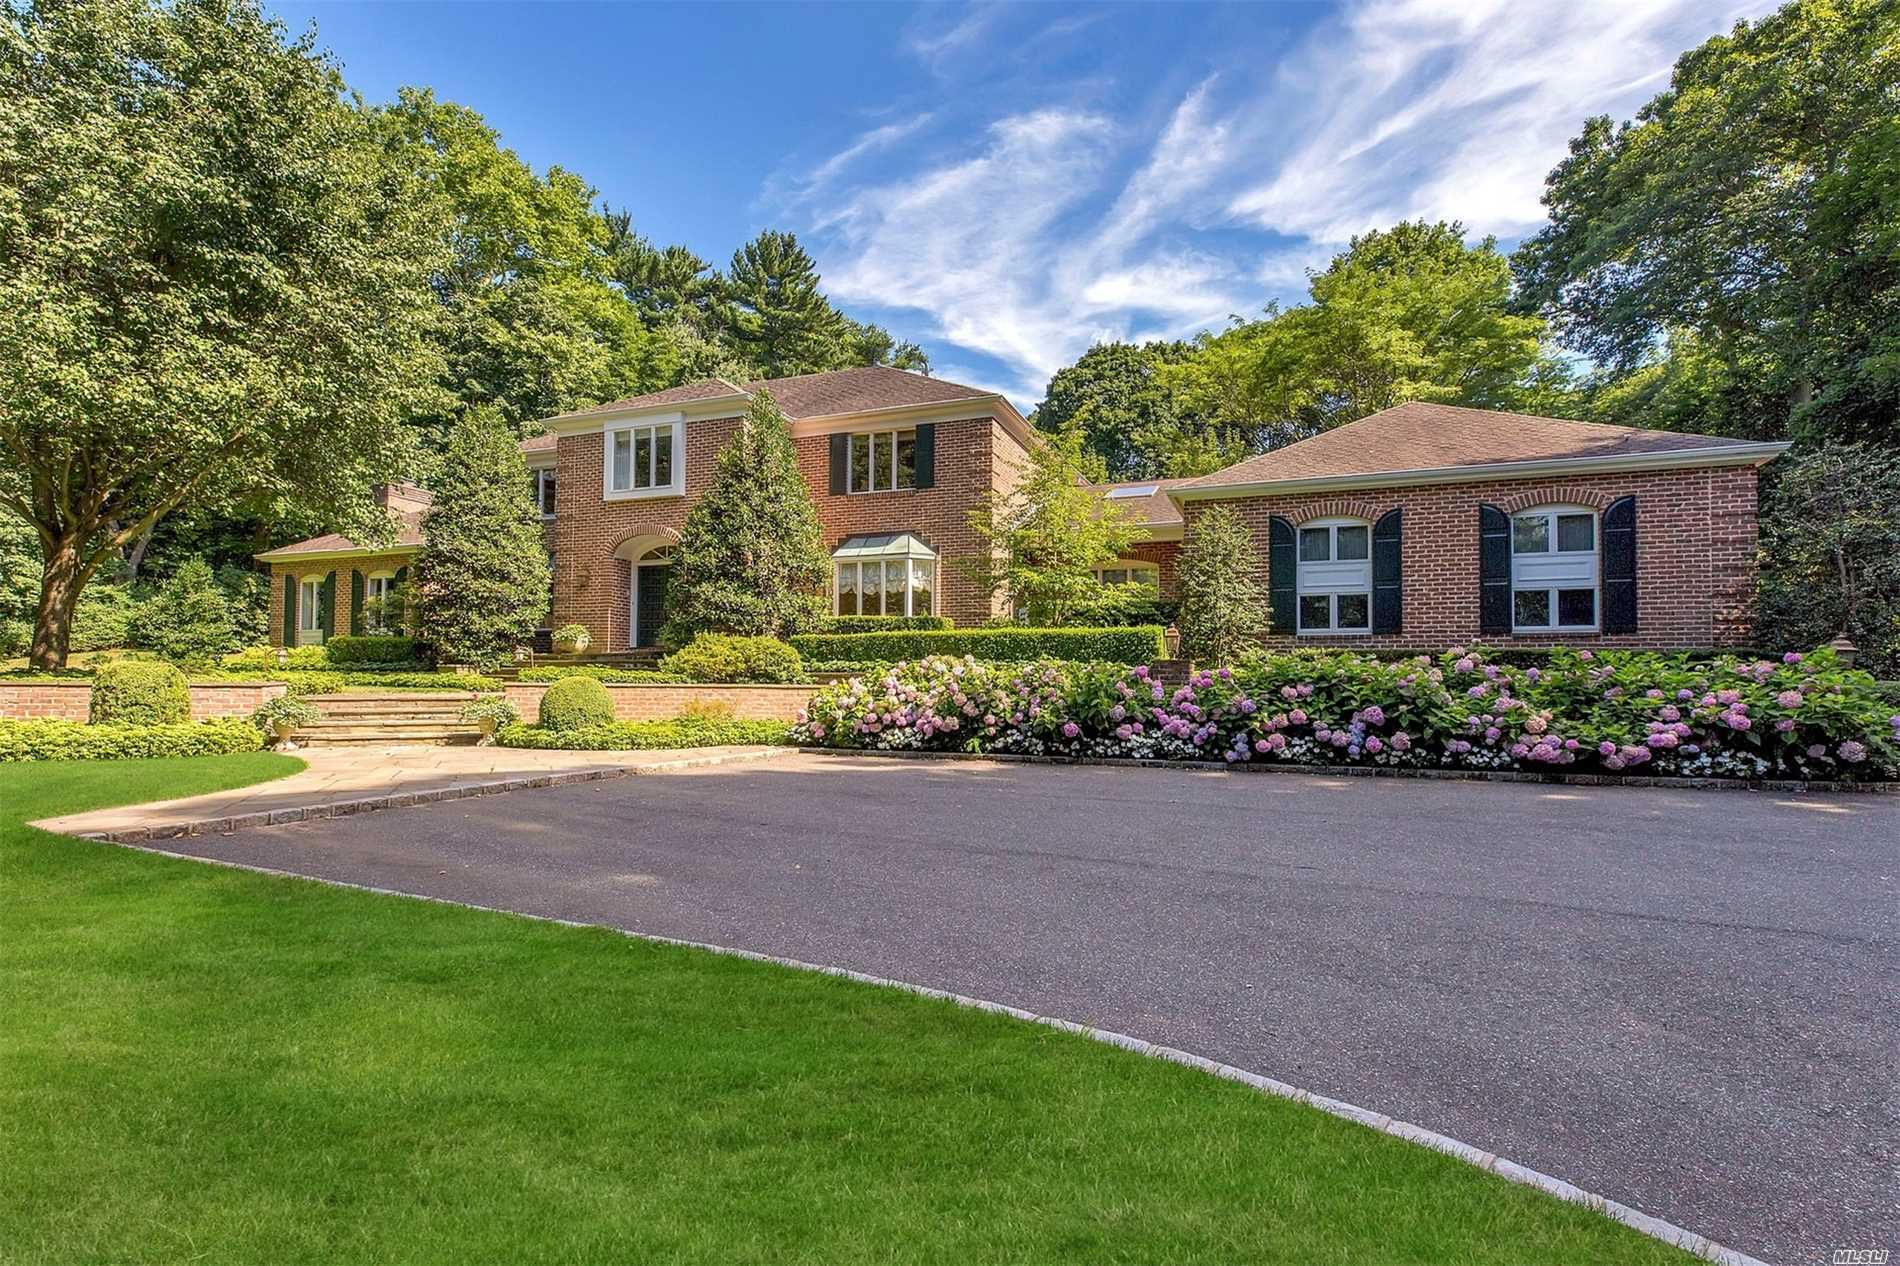 Photo of home for sale at 1885 Muttontown Rd, Muttontown NY